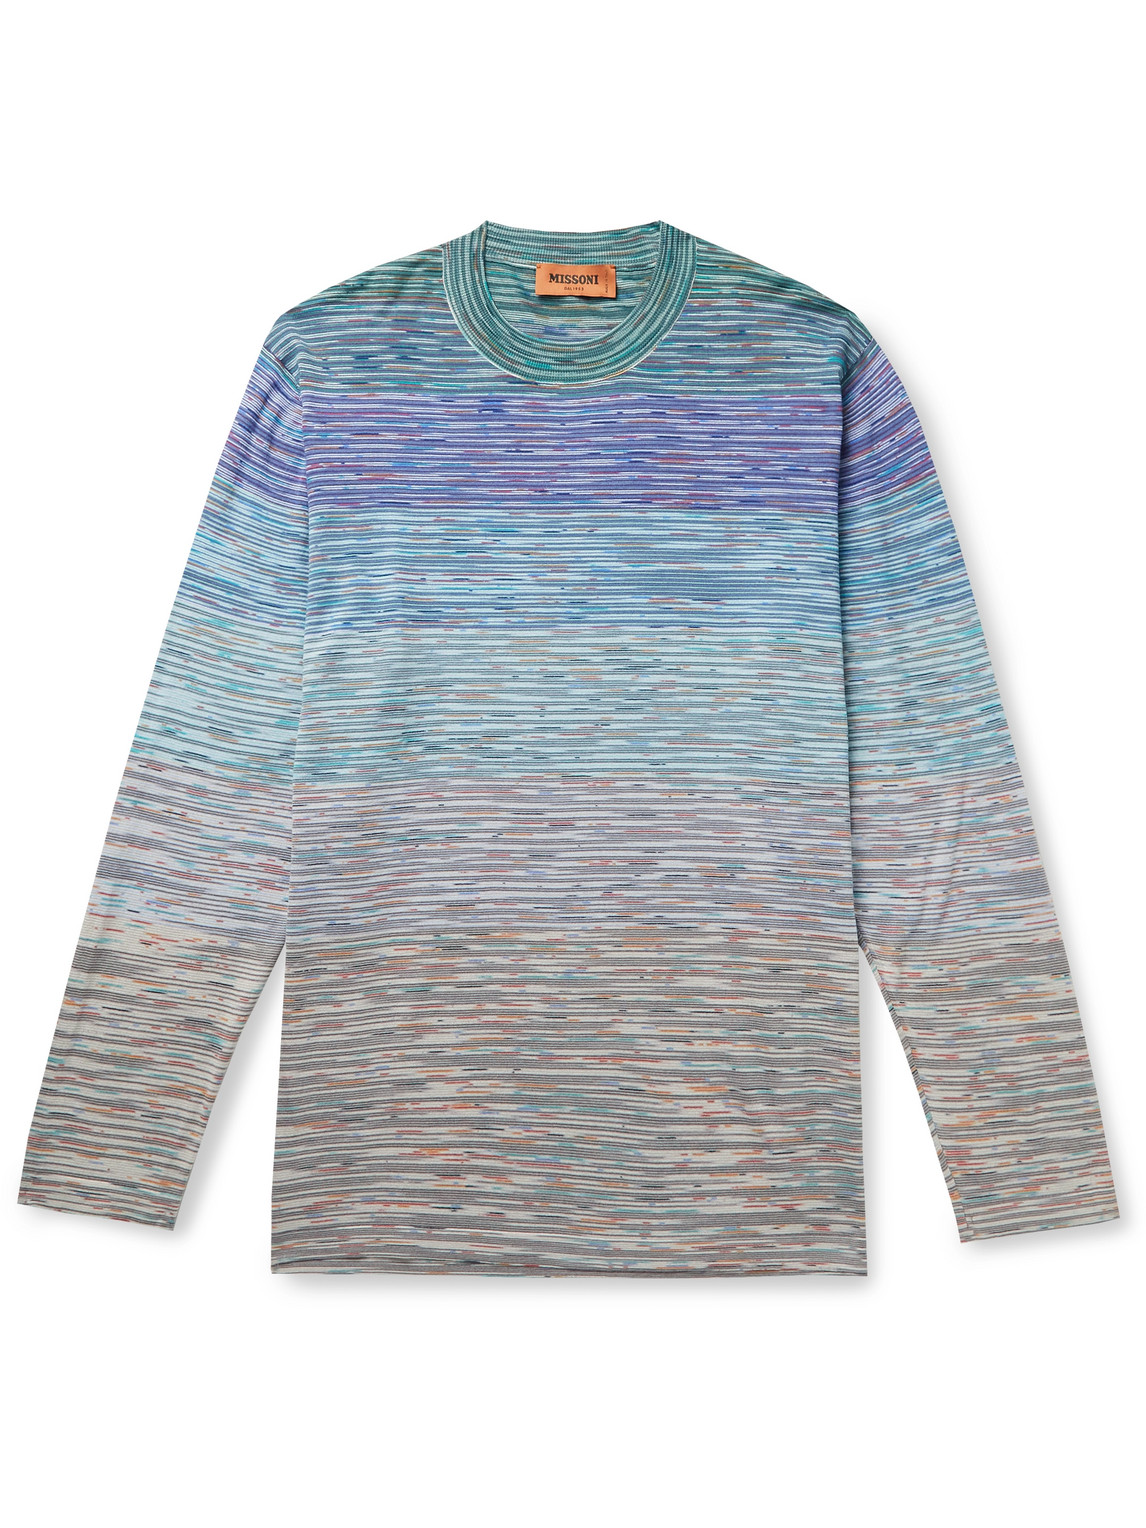 Missoni SPACE-DYED STRIPED COTTON SWEATER